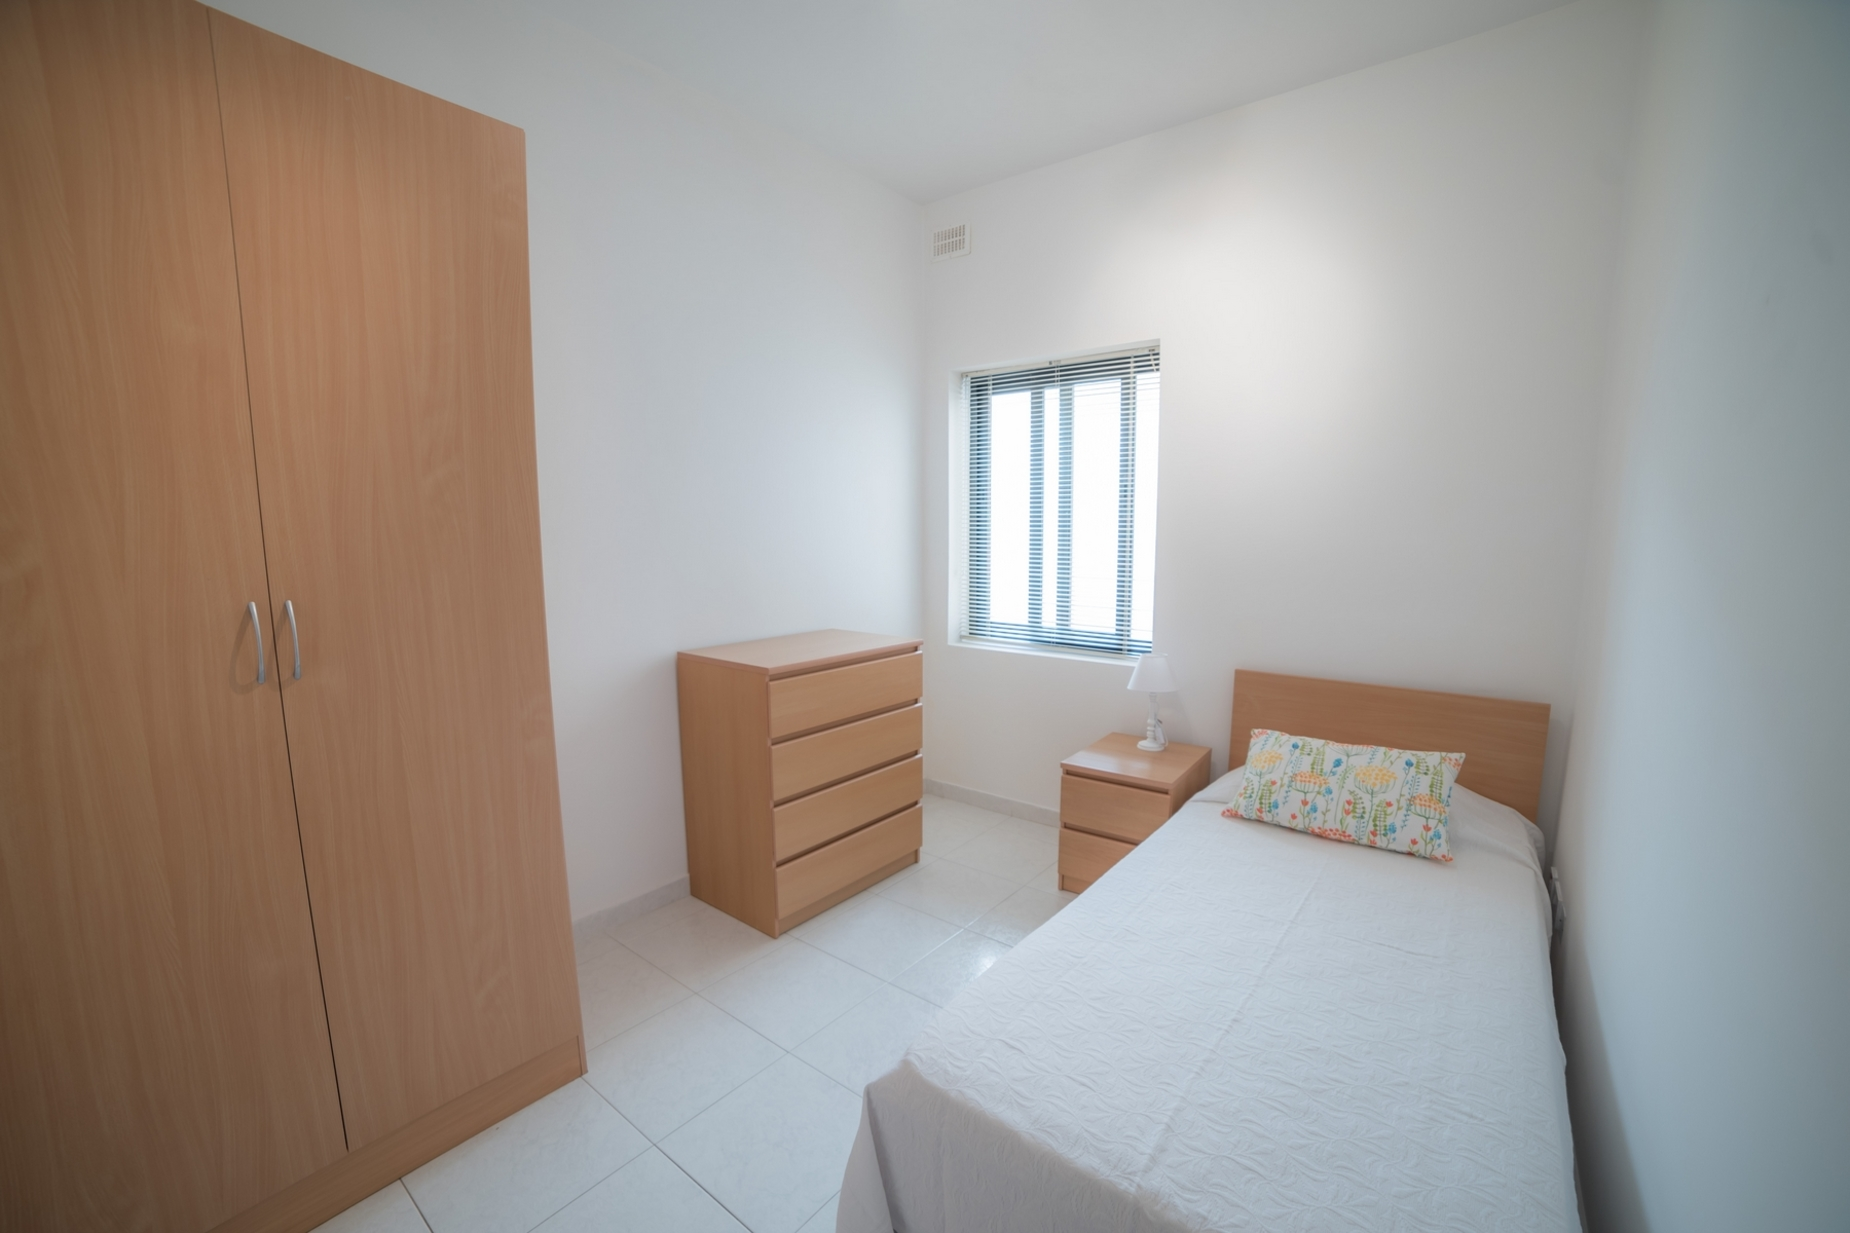 3 bed Apartment For Rent in Ibragg, Ibragg - thumb 10